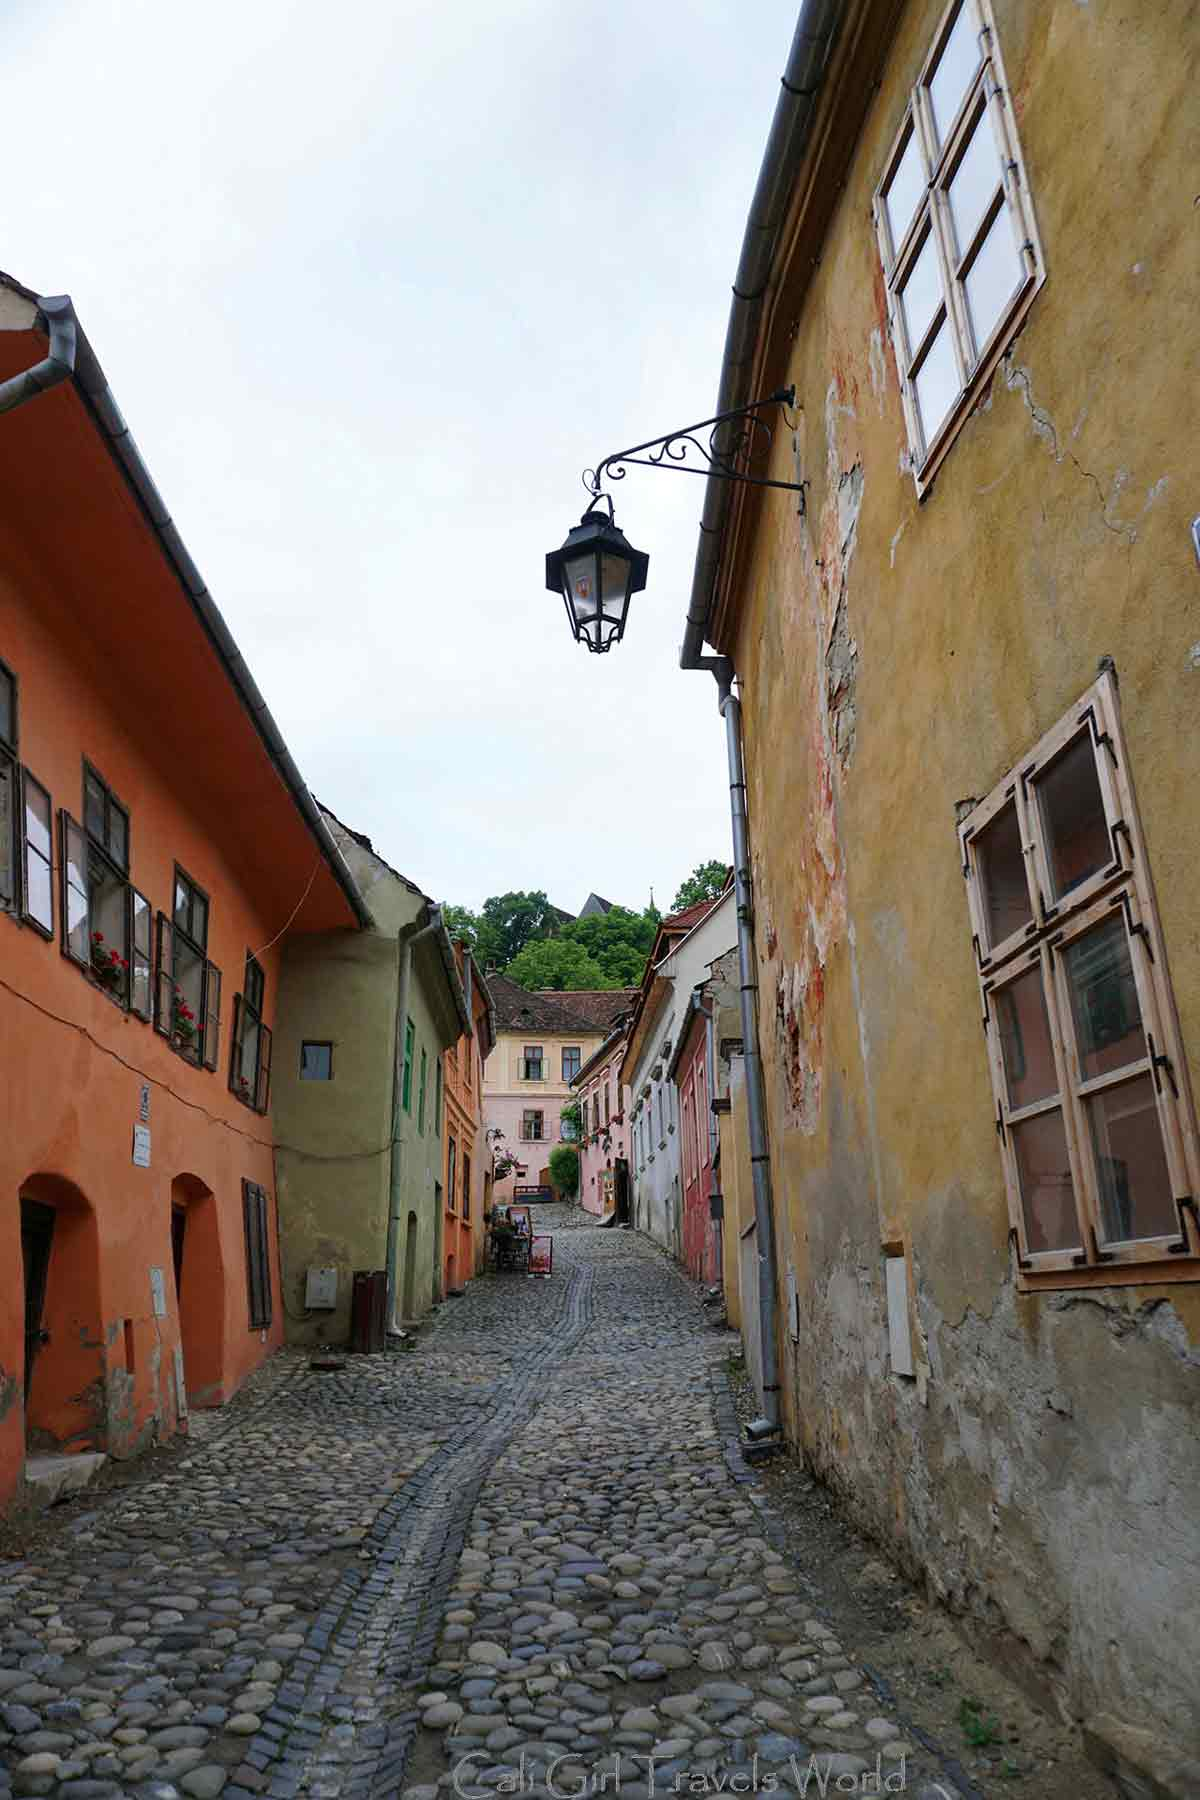 An uphill street lined with brightly colored house in Sighisoara, Translyvania, Romania.